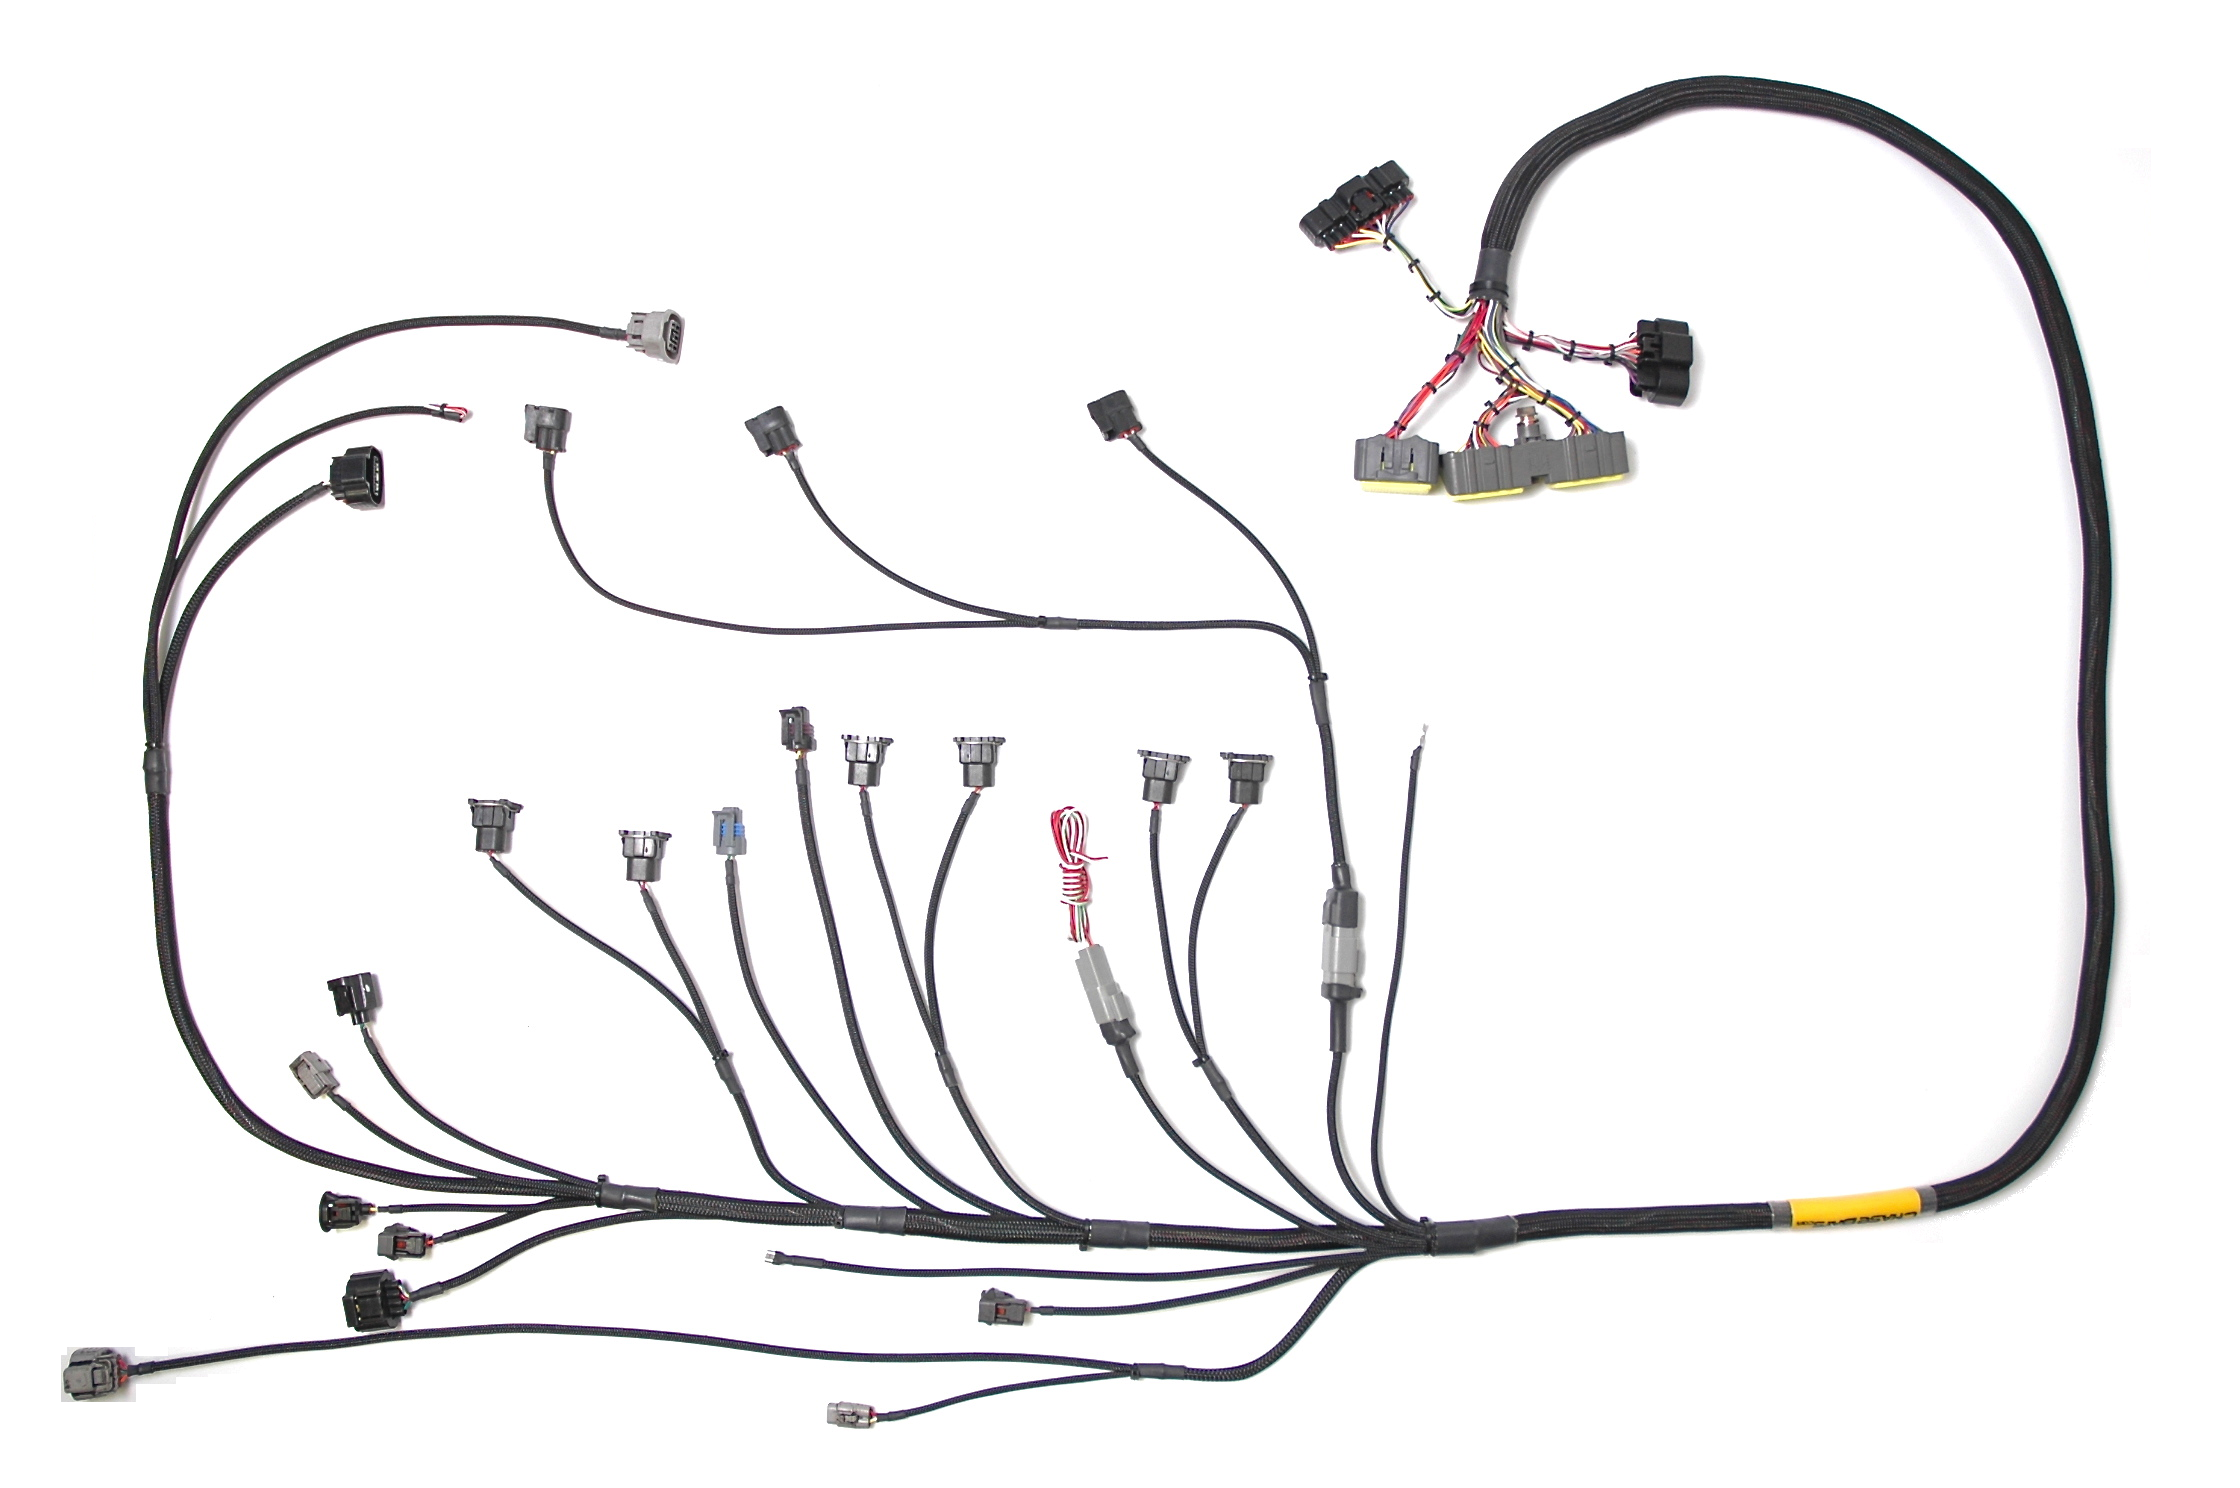 89 93 mustang engine wiring harness 89 mustang shifter